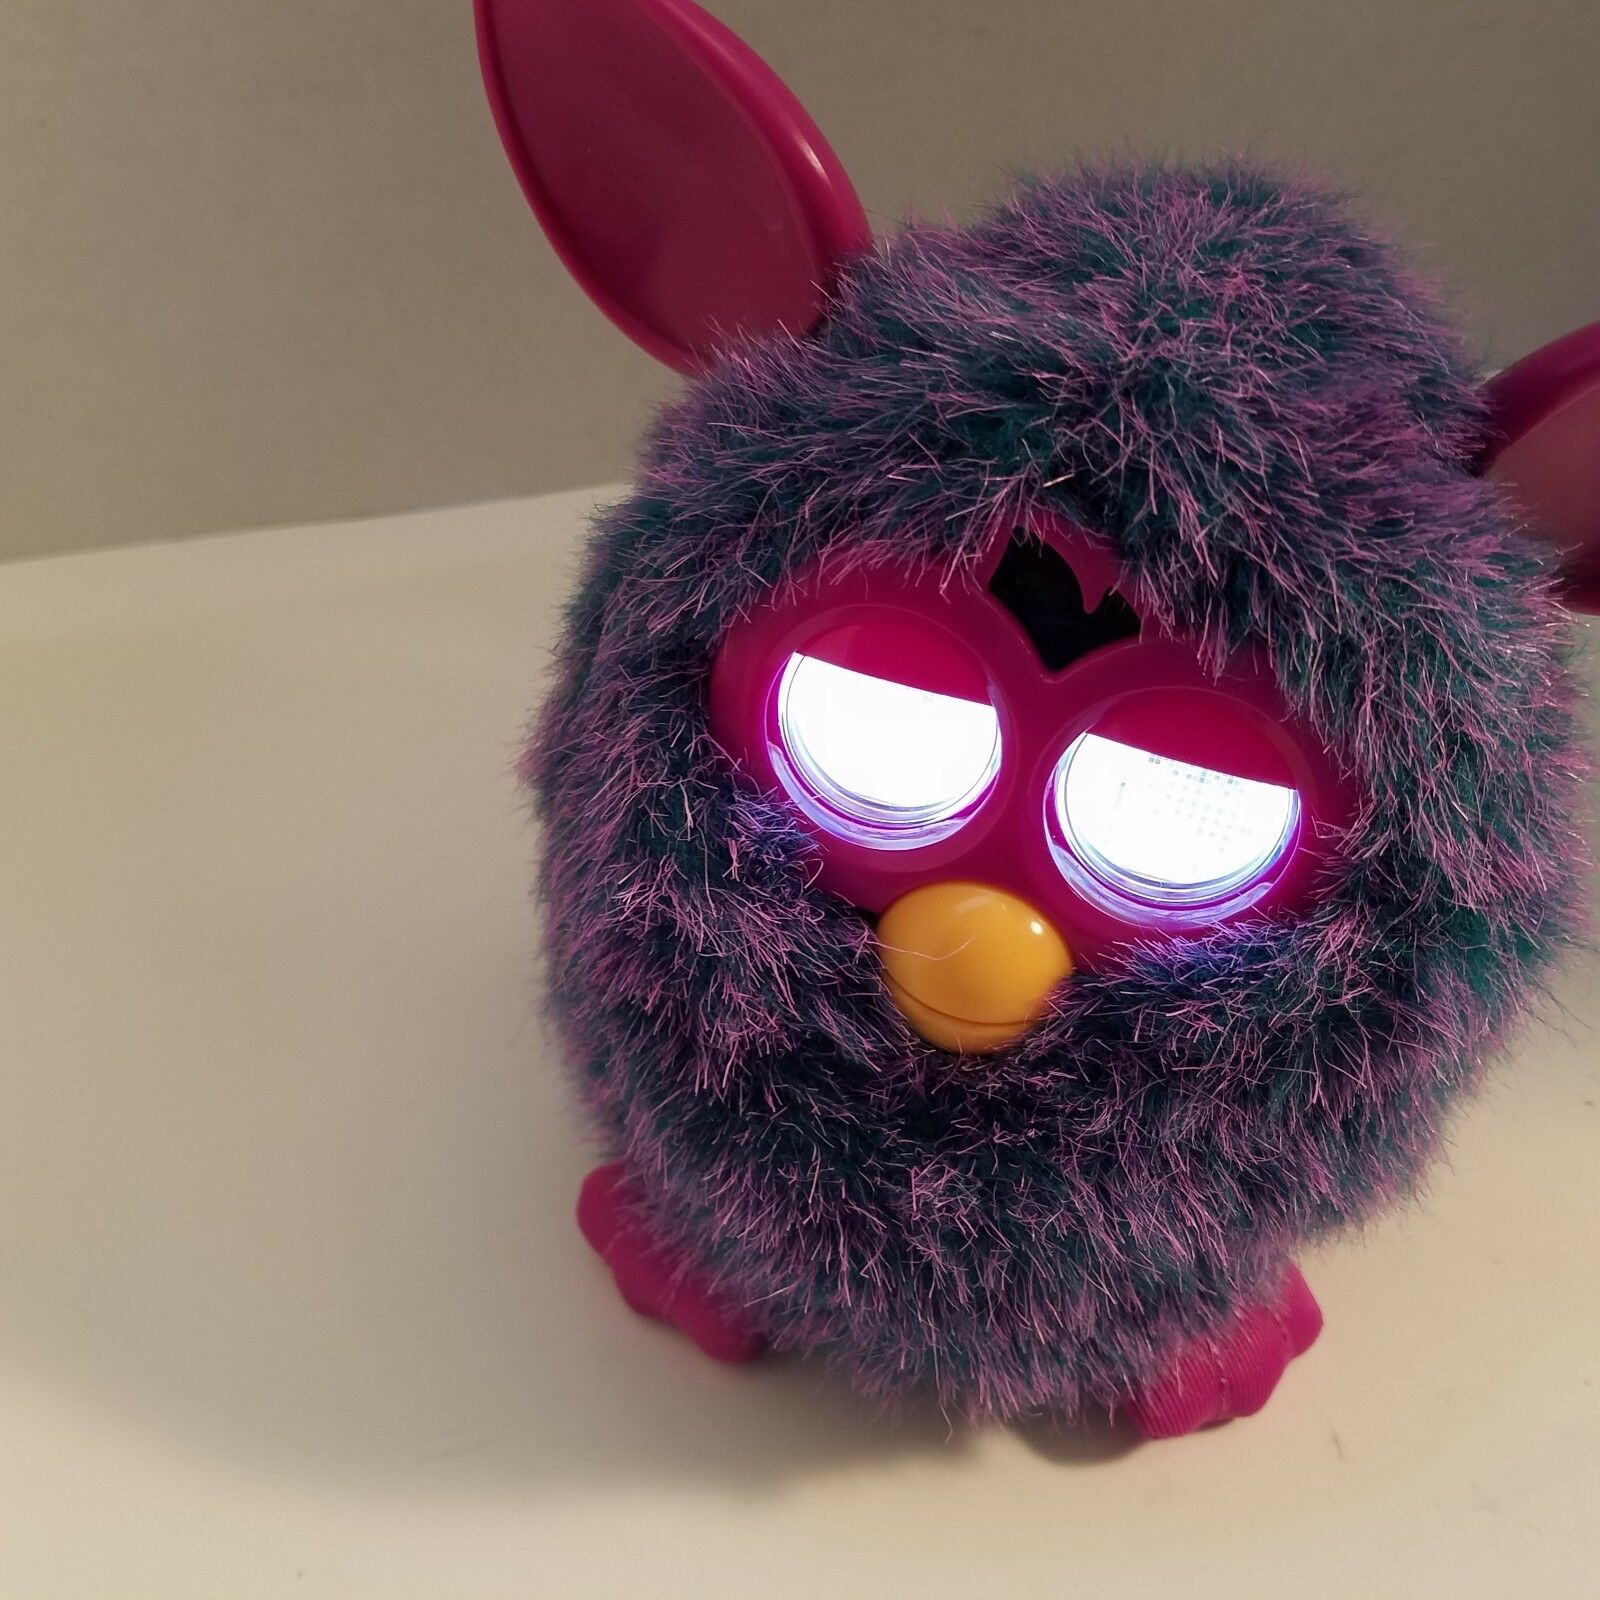 Furby  2012 Pink Purple Interactive Toy Eyes Light Up Tested Works Video Below